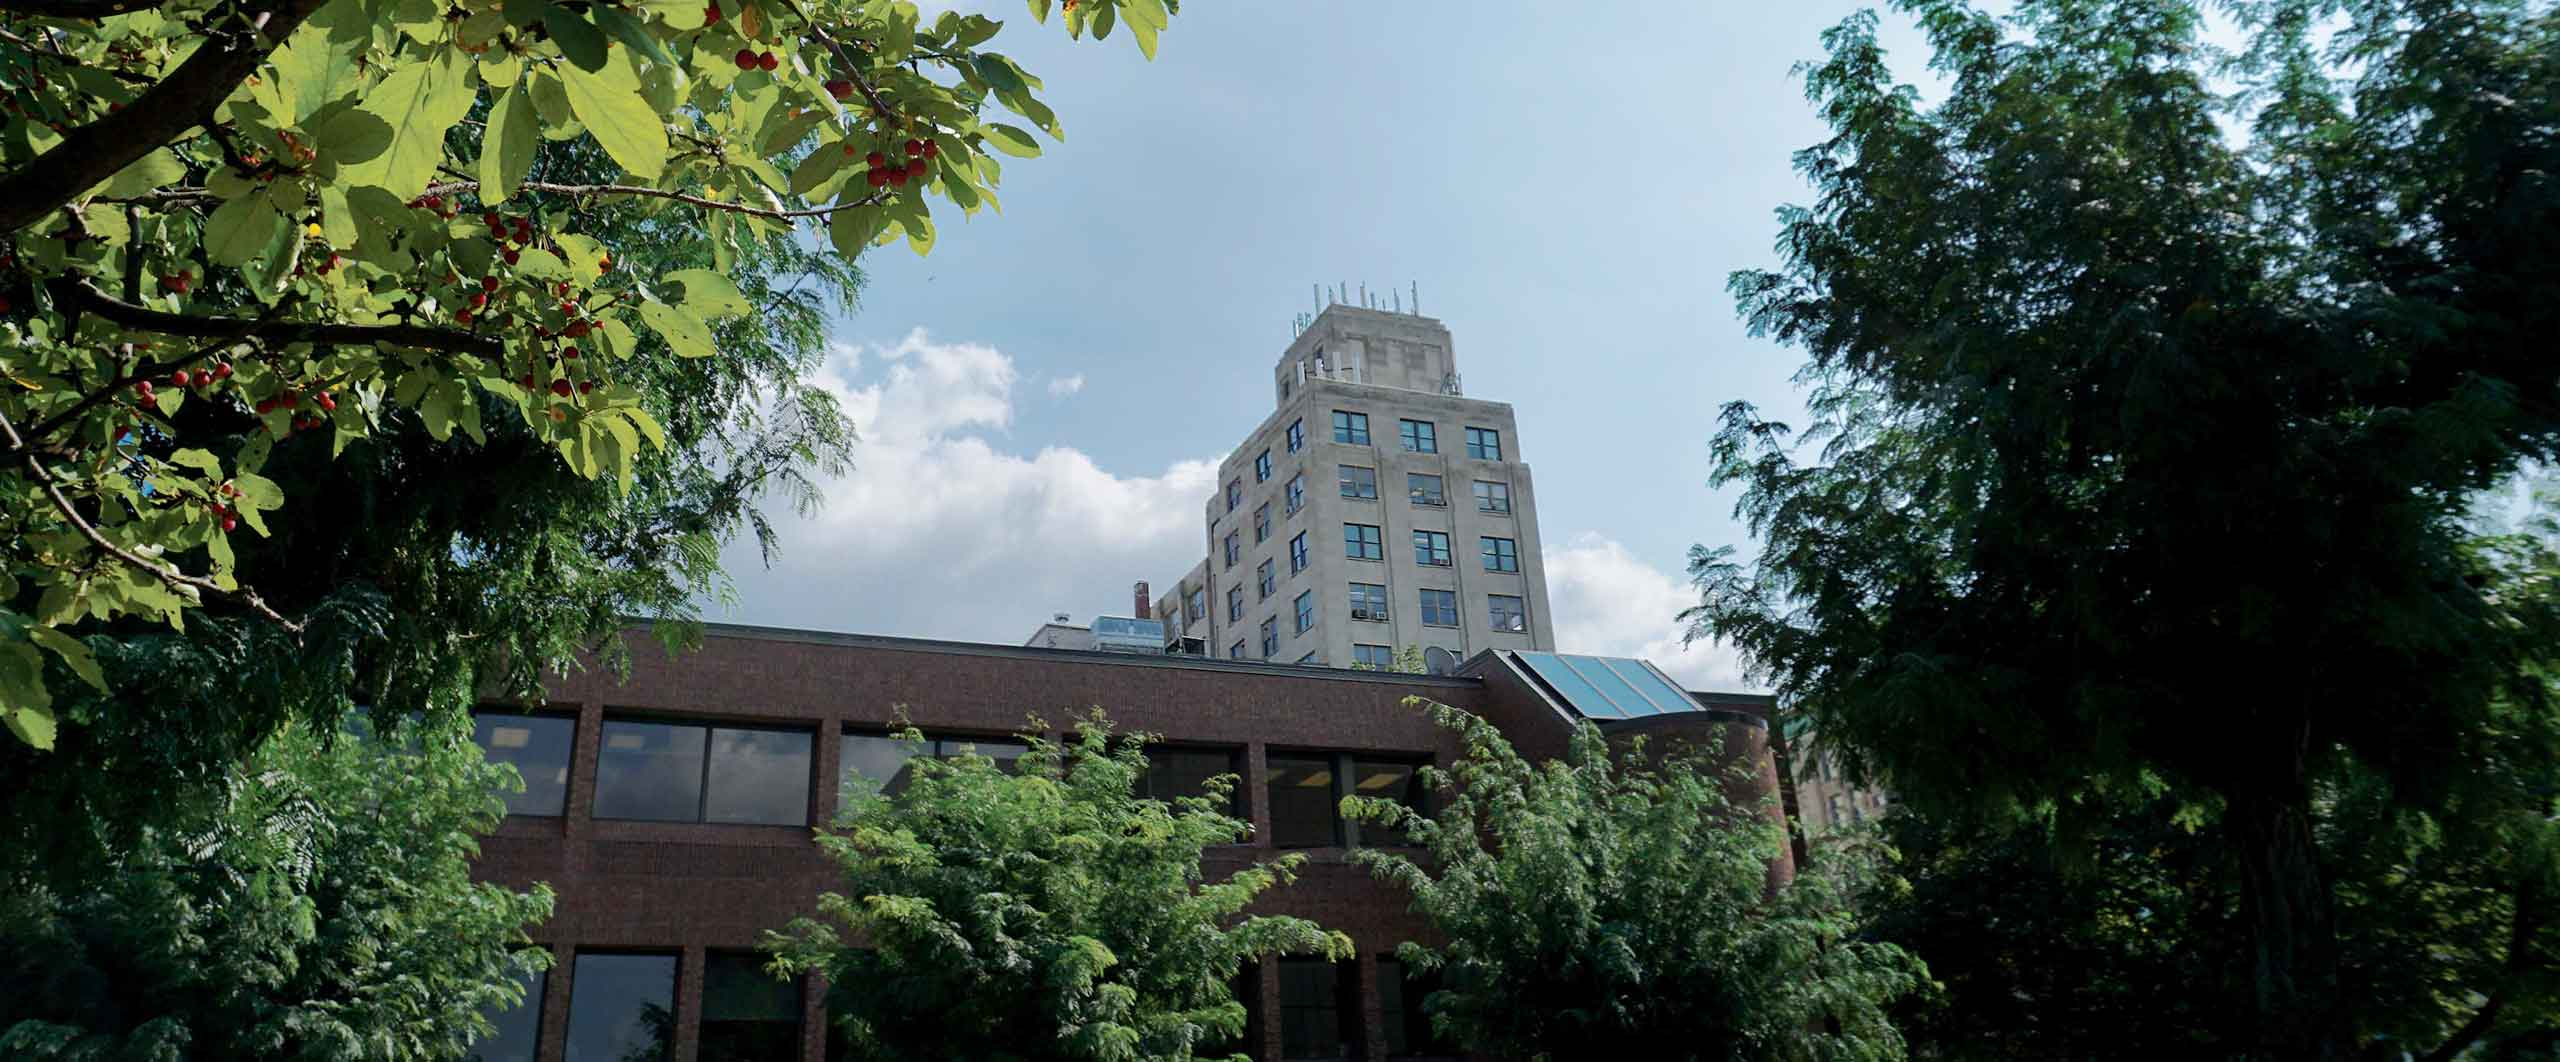 A distant view of the Bank Towers at 321 Spruce Street in Scranton